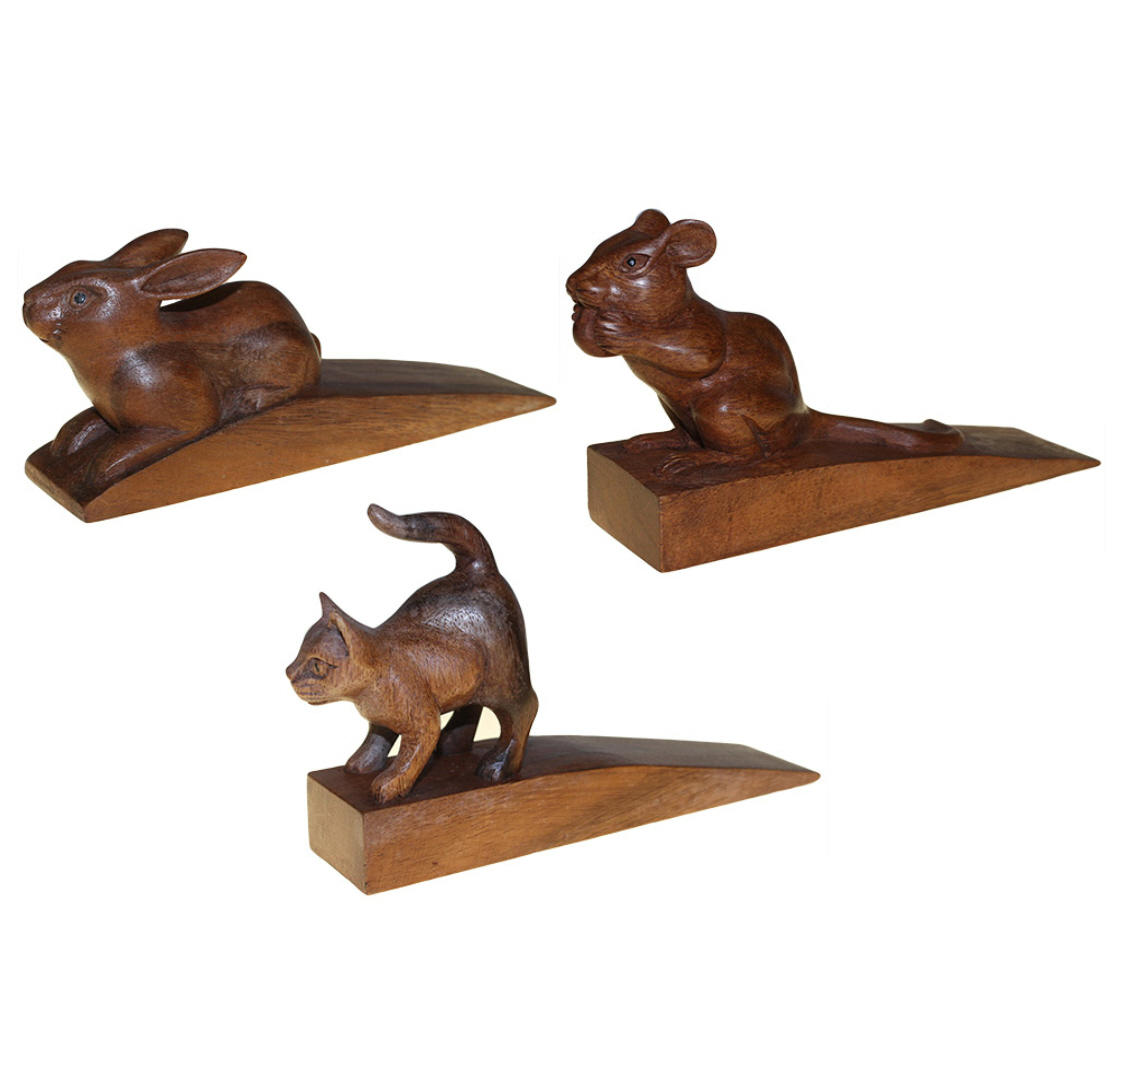 Hand Carved Wooden Animal Door Stop